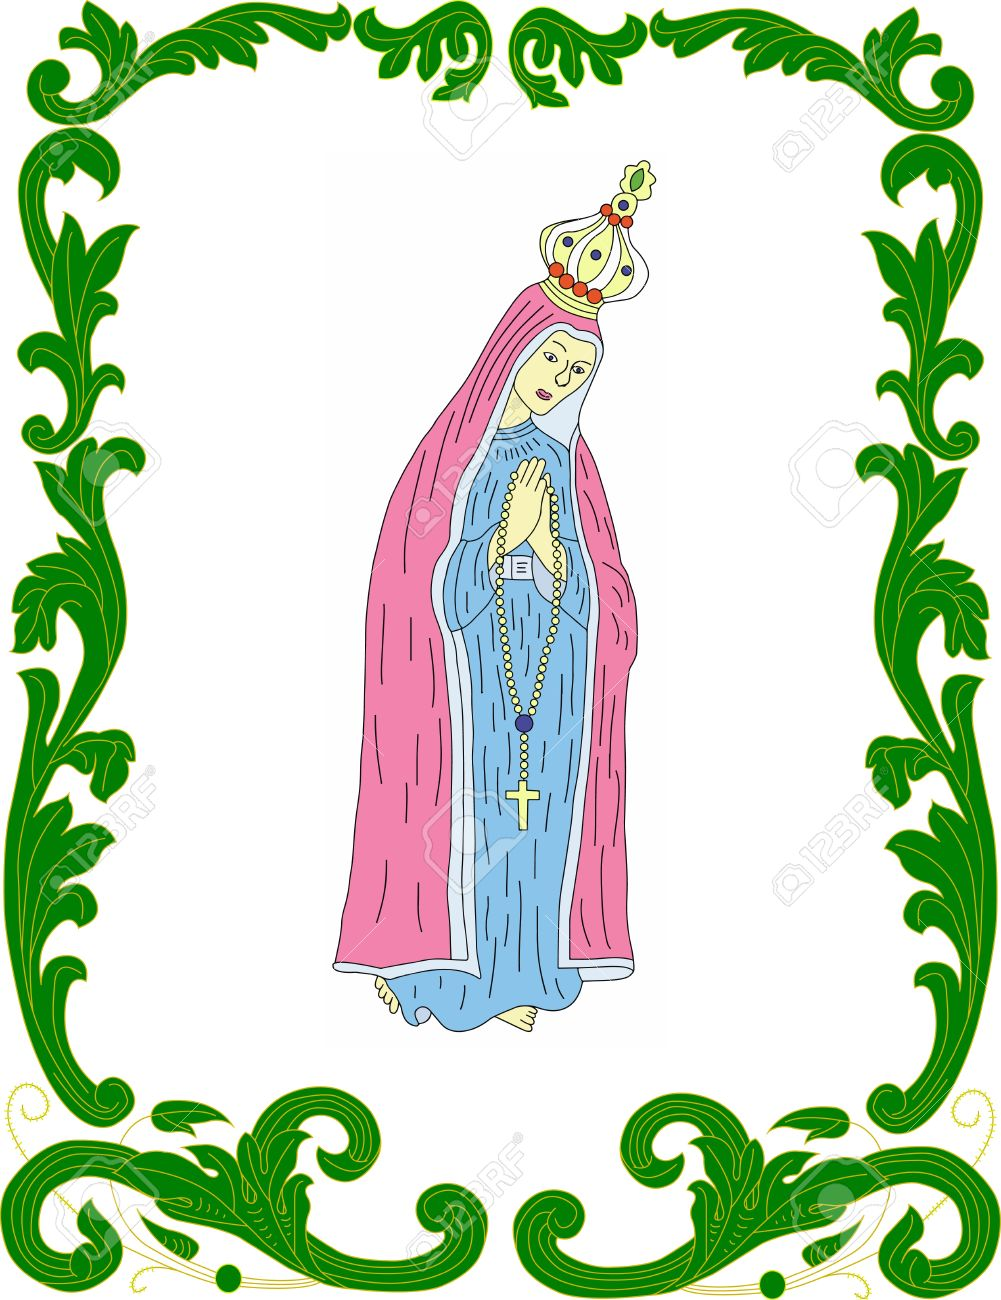 Our Lady Of Fatima In Stylistic Frame Royalty Free Cliparts.